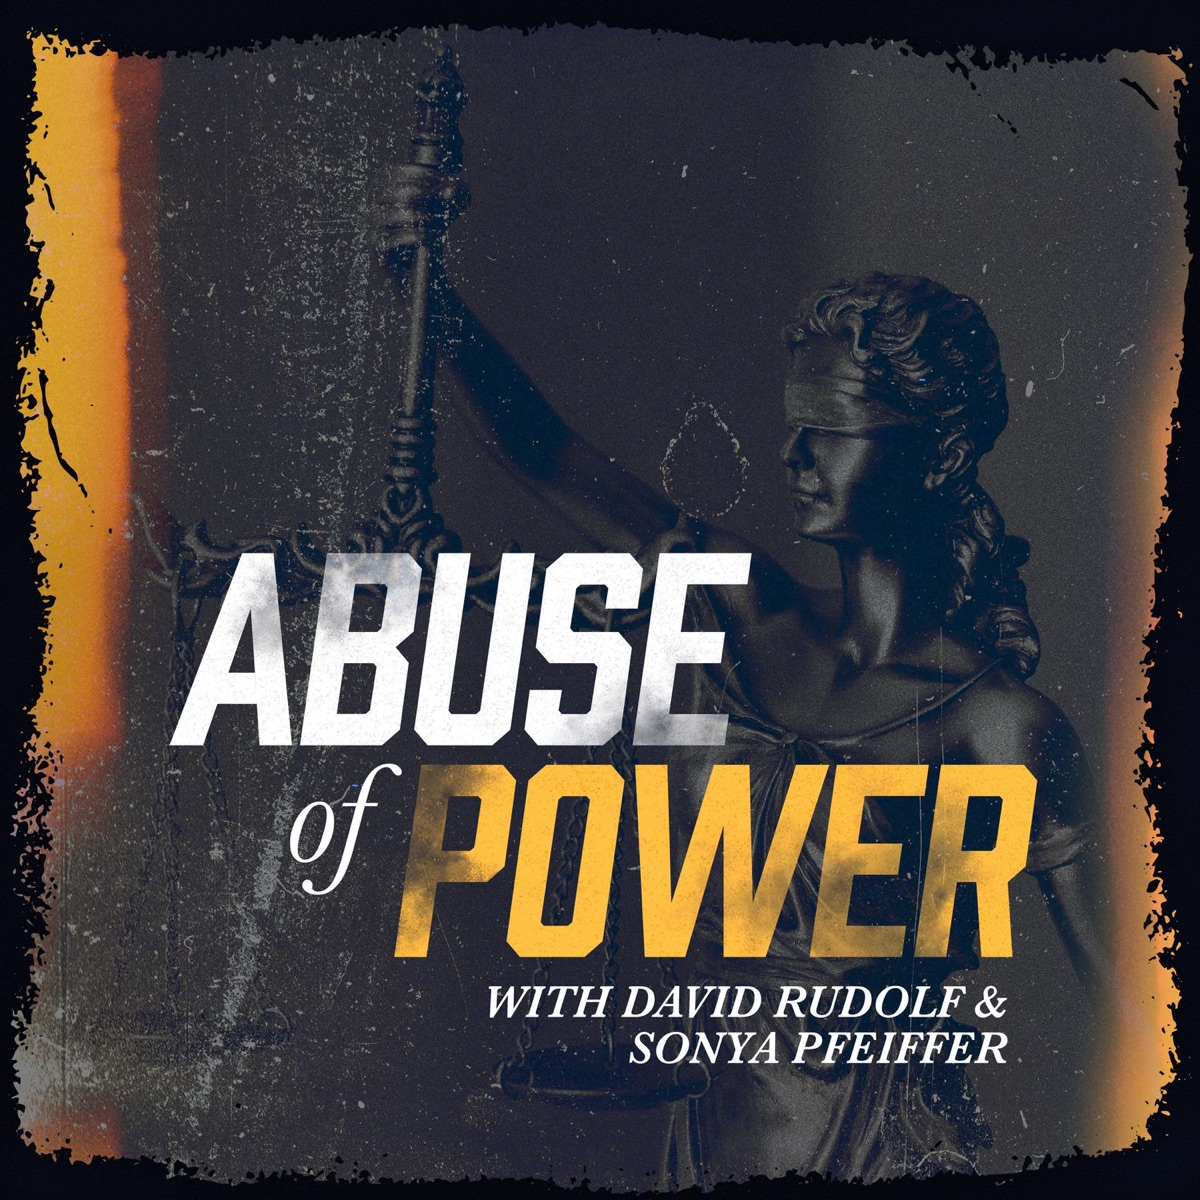 Abuse of Power with David Rudolf and Sonya Pfeiffer